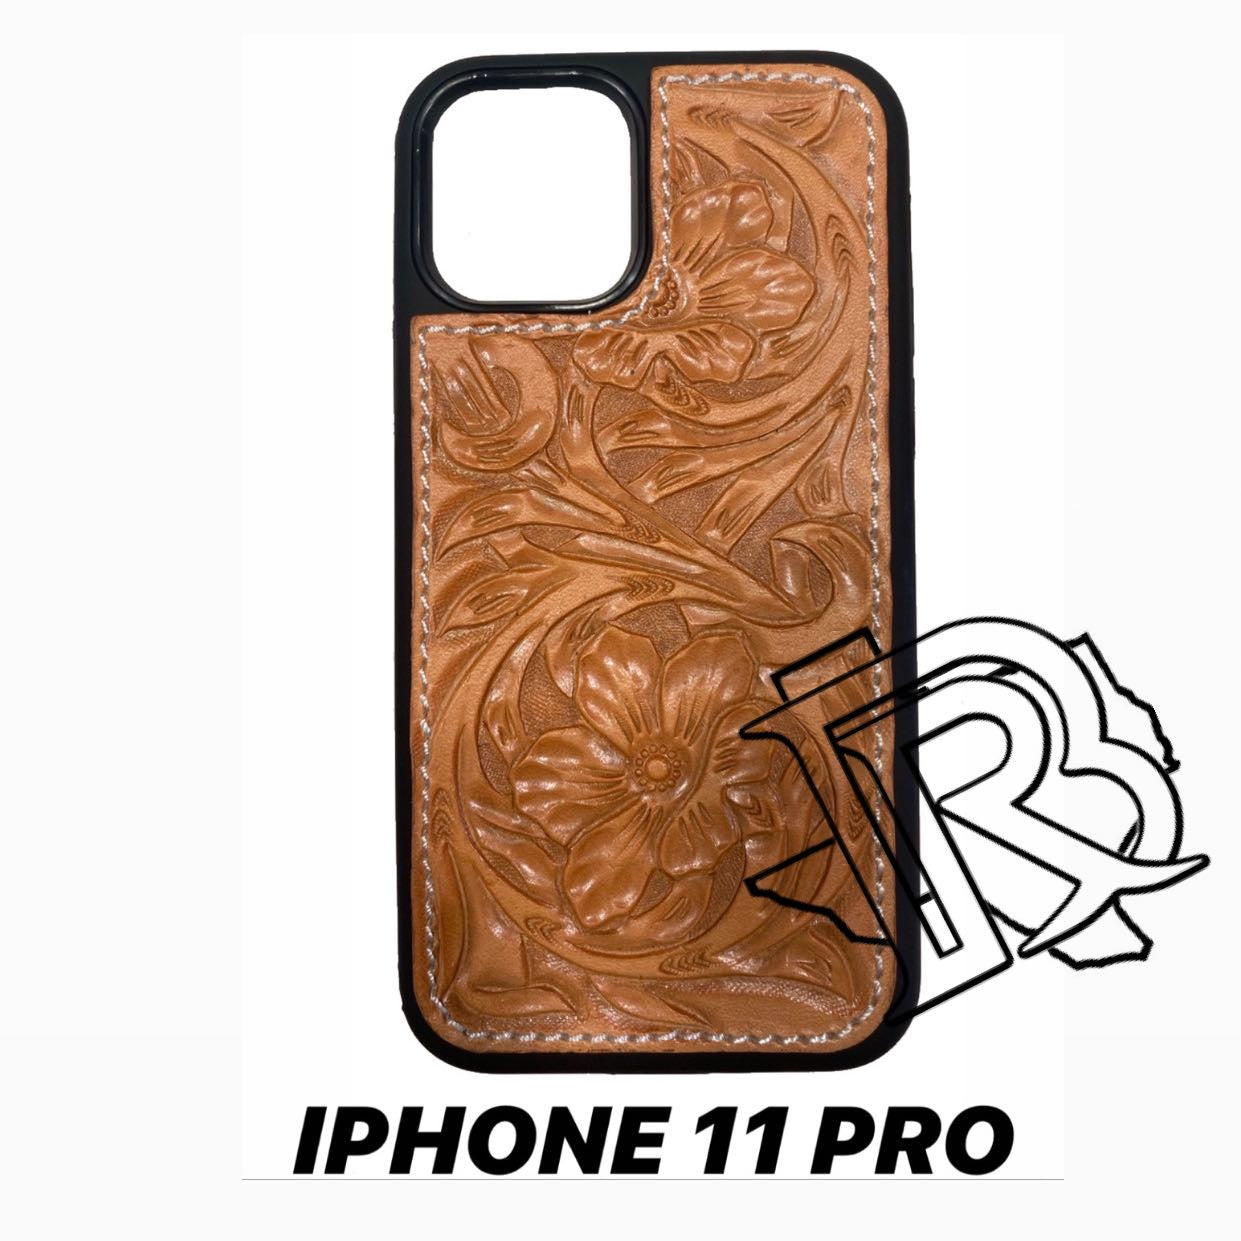 IPHONE 11 PRO TOOLED LEATHER CASE